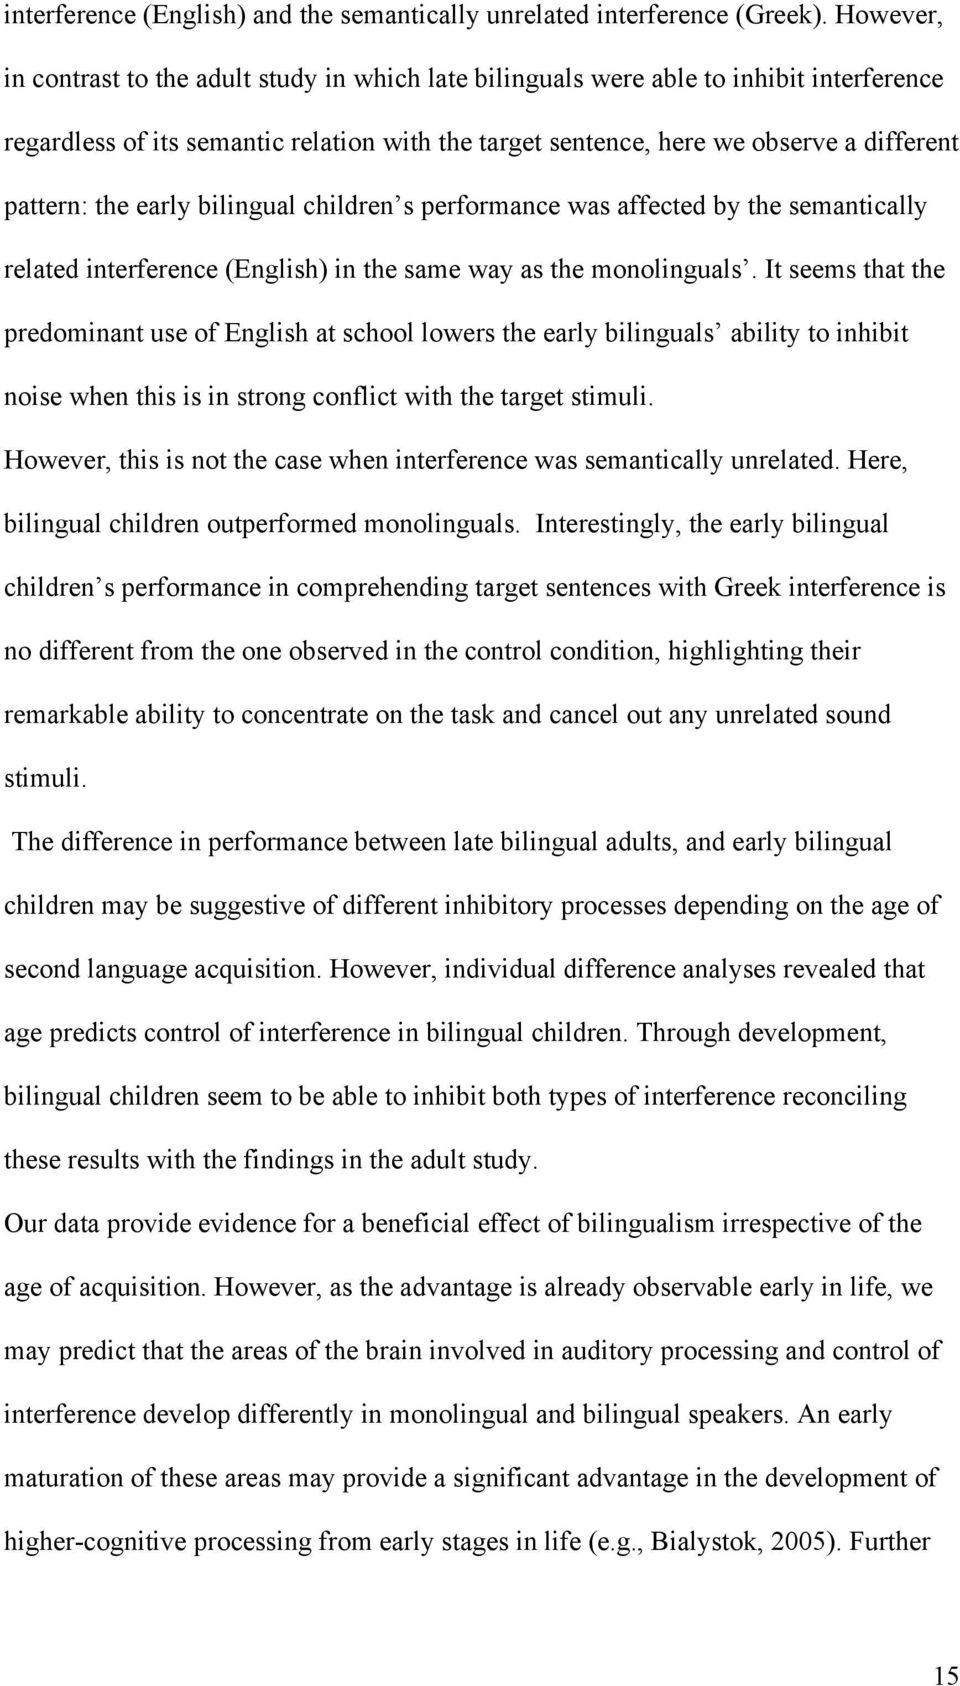 the early bilingual children s performance was affected by the semantically related interference (English) in the same way as the monolinguals.